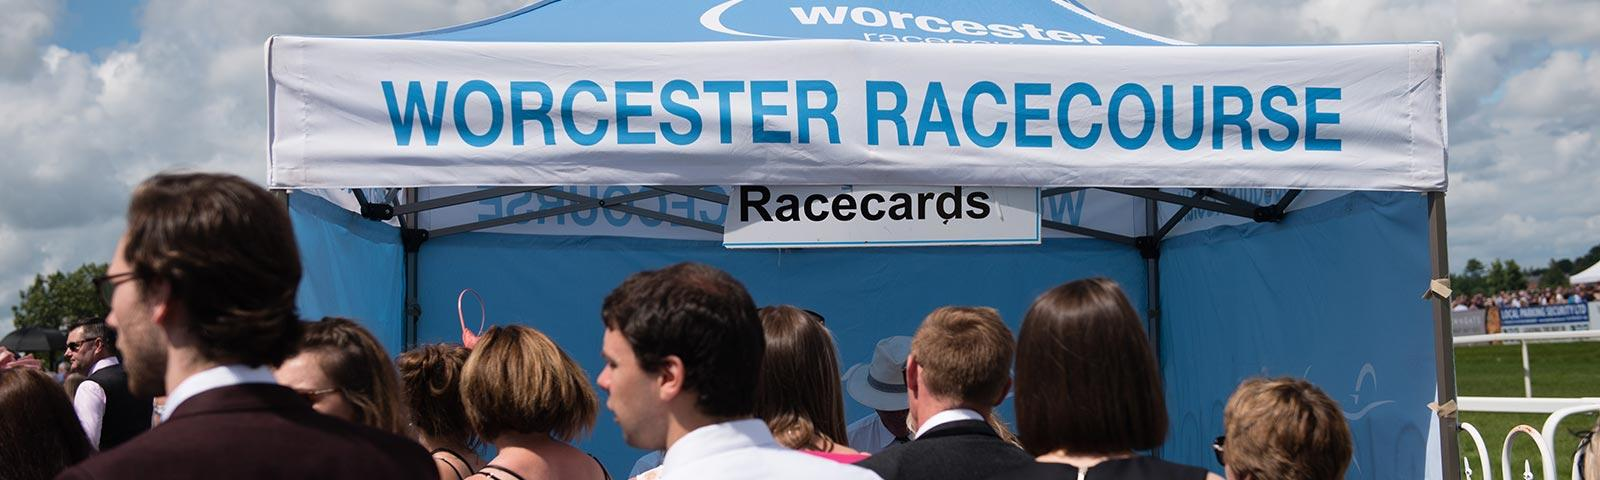 Crowds standing in front of a tent at Worcester Racecourse, waiting to buy racecards.